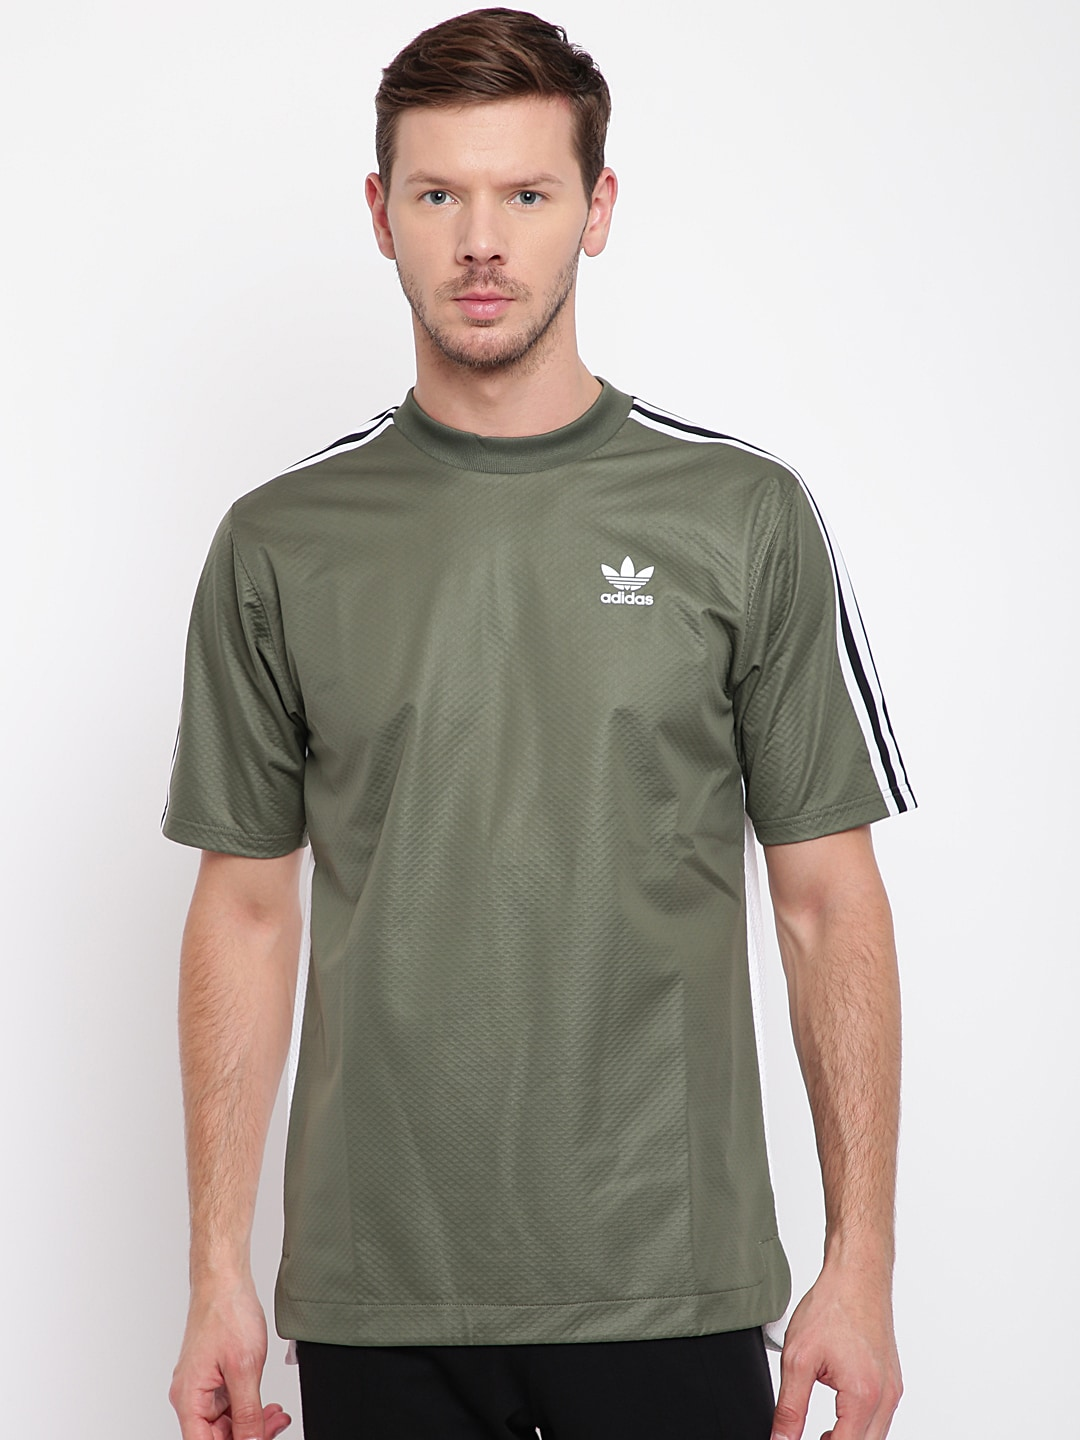 3349cc609d2 Adidas T-Shirts - Buy Adidas Tshirts Online in India